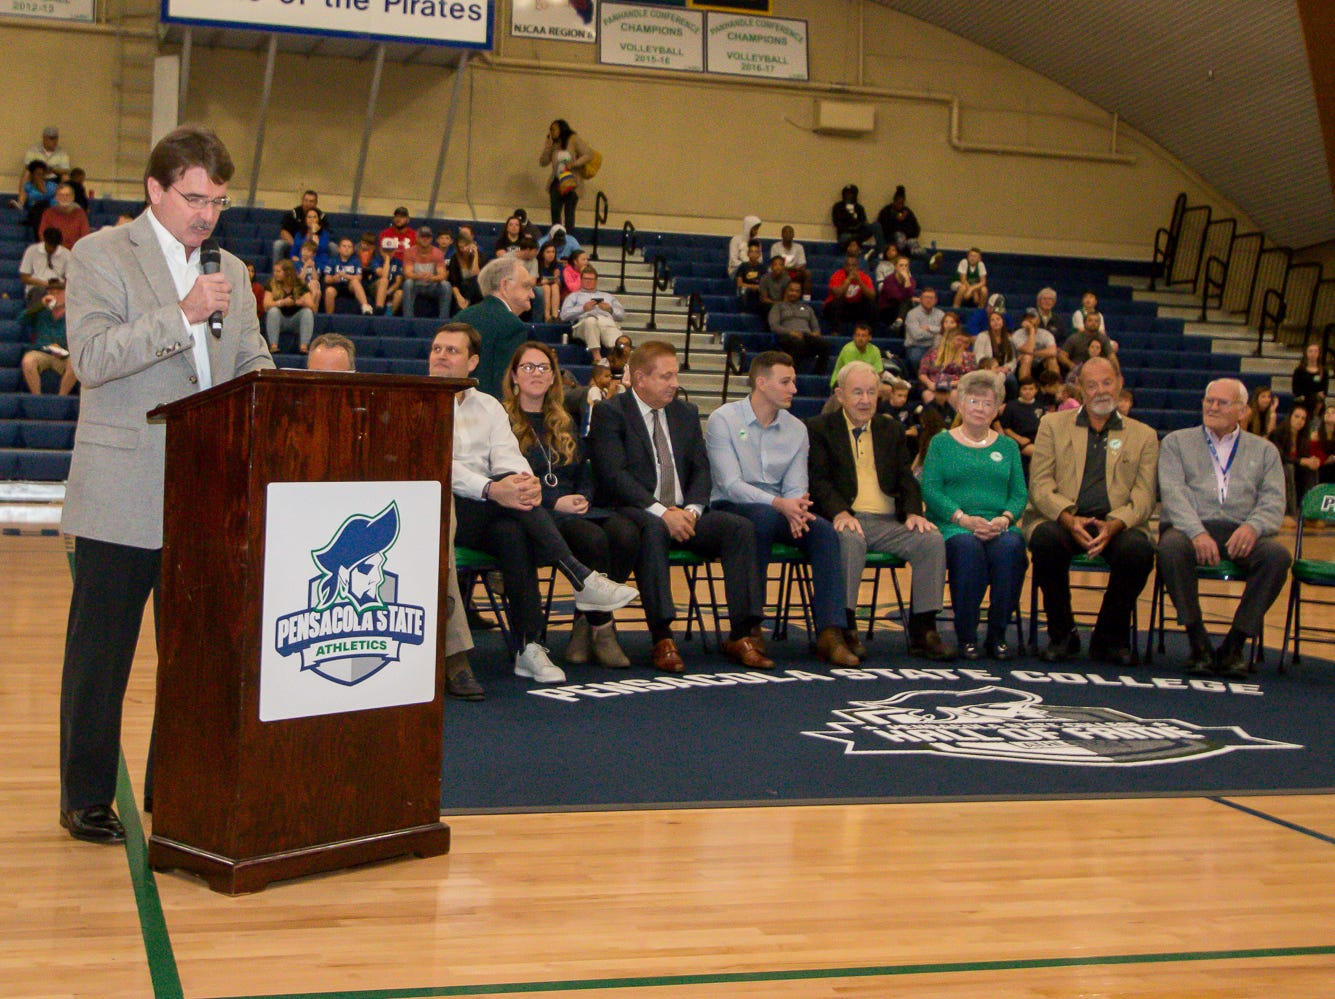 Dan Shugart, sports director for WEAR-TV3, announces the inductees during Pensacola State College's inaugural Athletics Hall of Fame induction ceremony on Saturday, February 16, 2019, in the Hartsell Arena on the main campus.